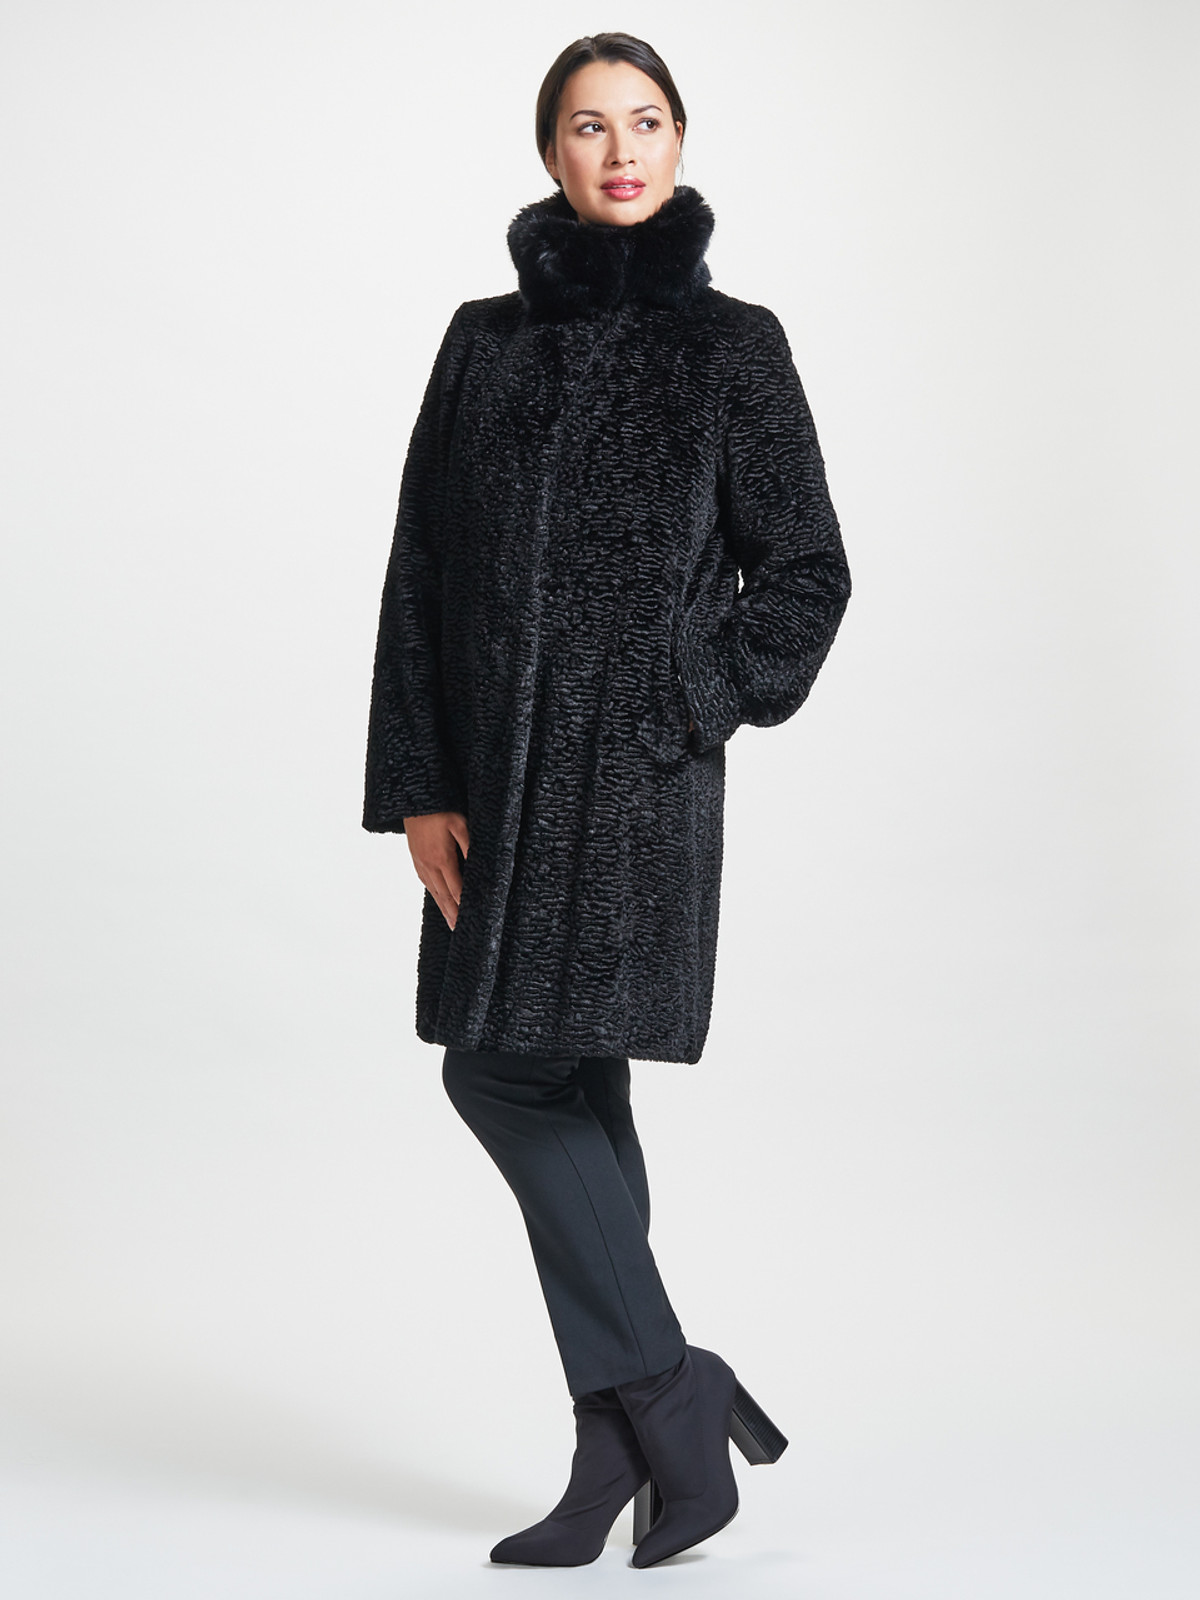 Astrakhan Coat with Fur Collar, Black.